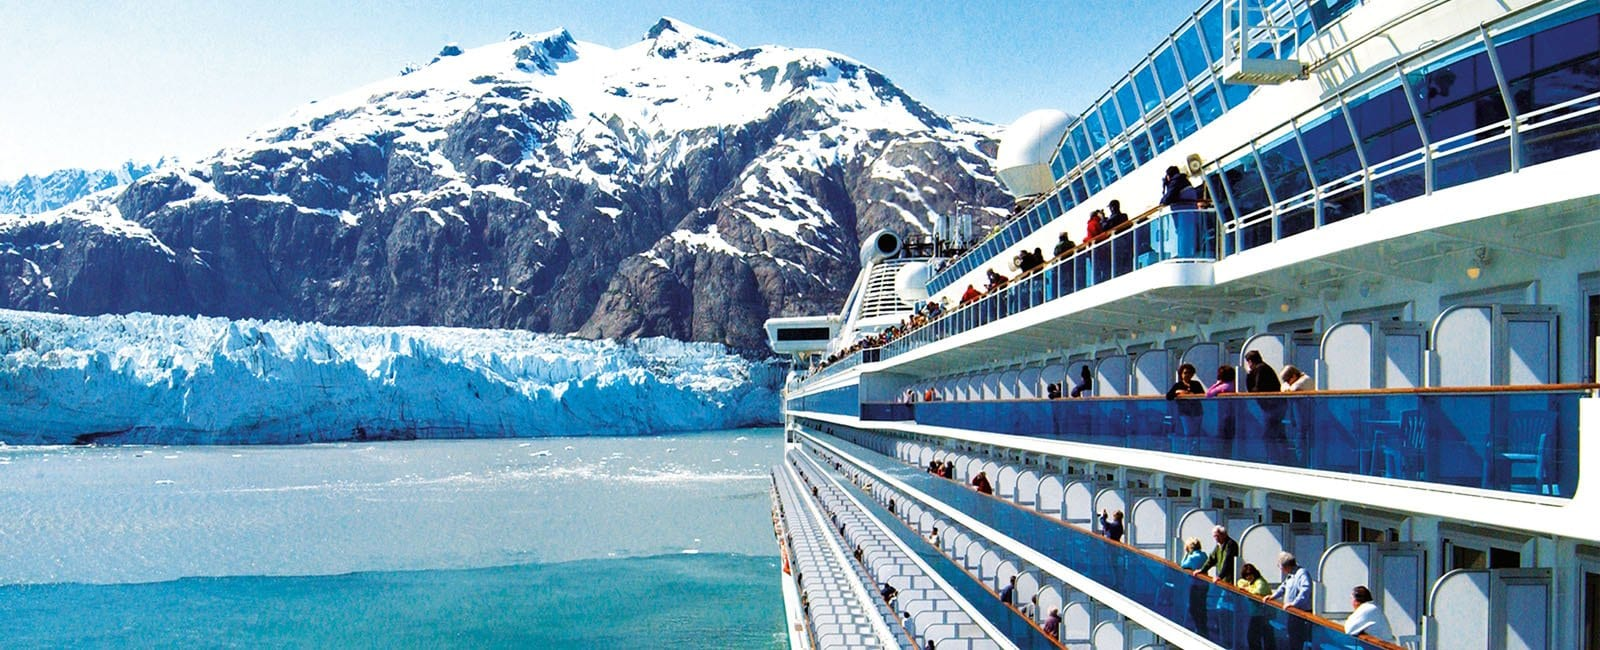 Disney Cruise Alaska 2020.The Best Alaska Cruise Sailing In 2019 2020 Global Munchkins